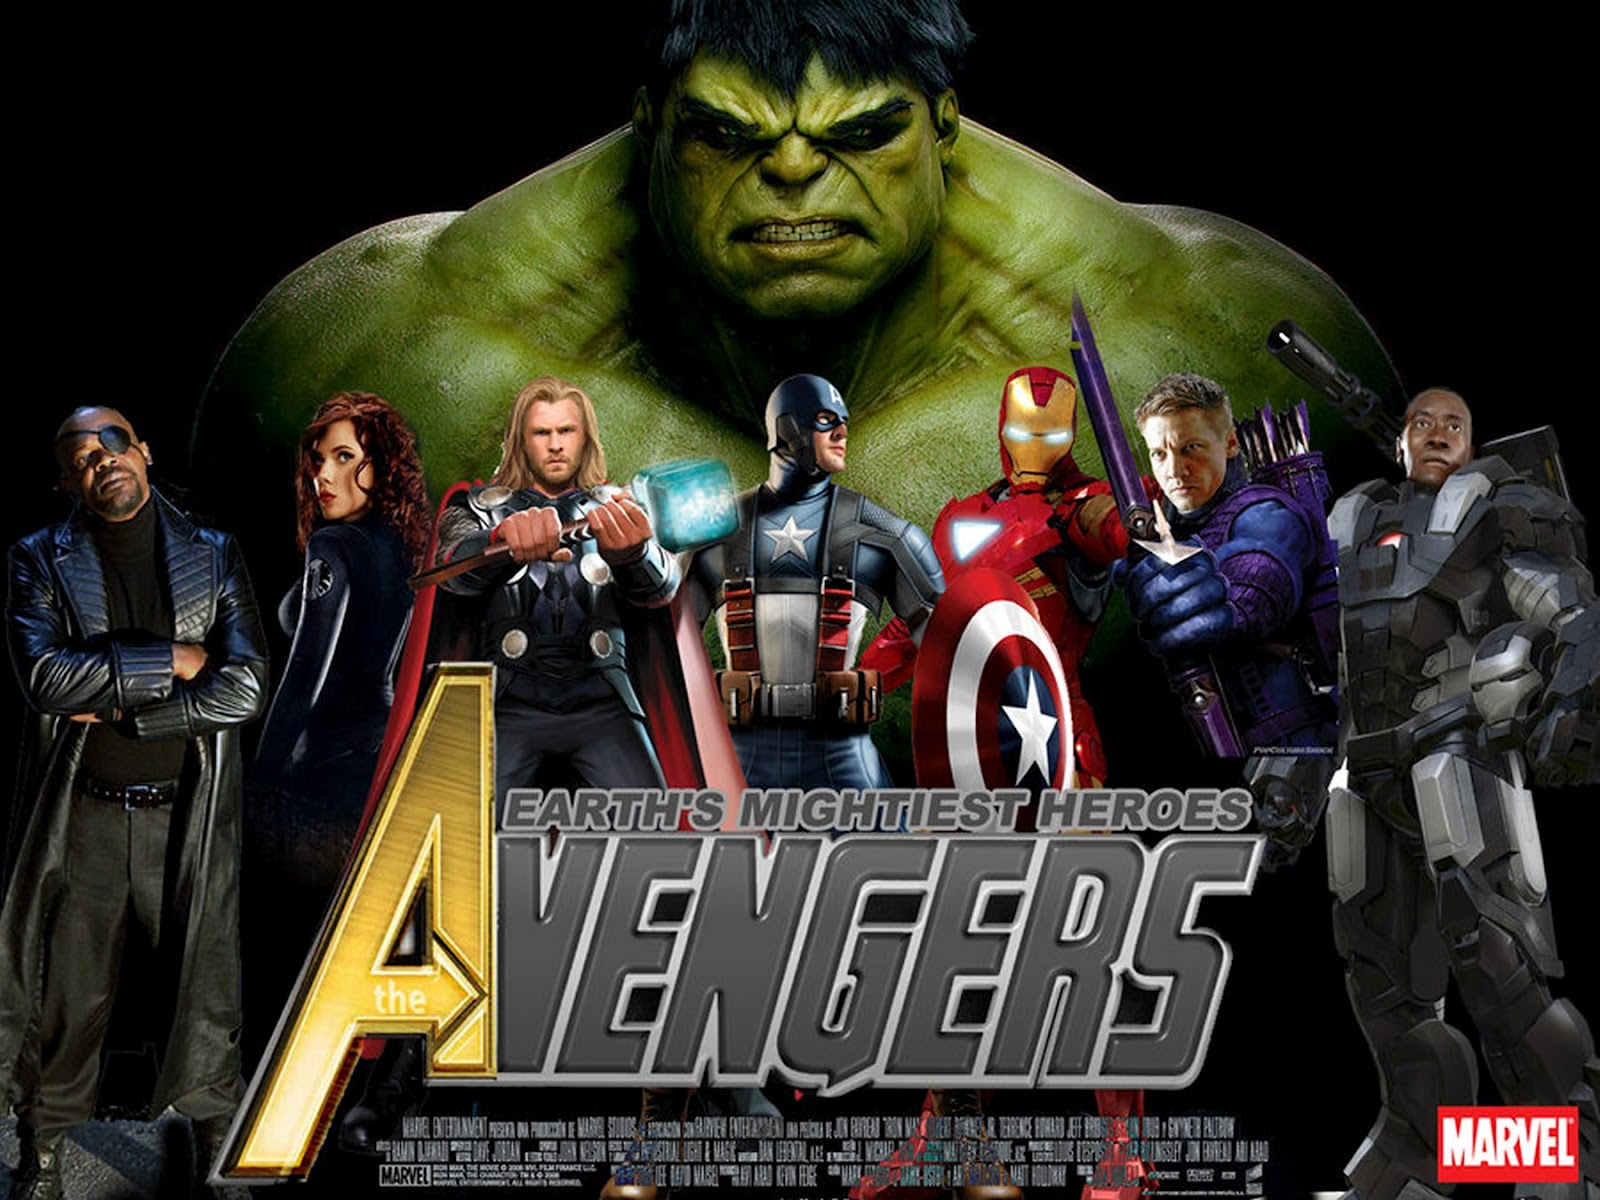 Pillar of enoch ministry blog the spiritual messages behind the chris hemsworth as thor in avengers movie buycottarizona